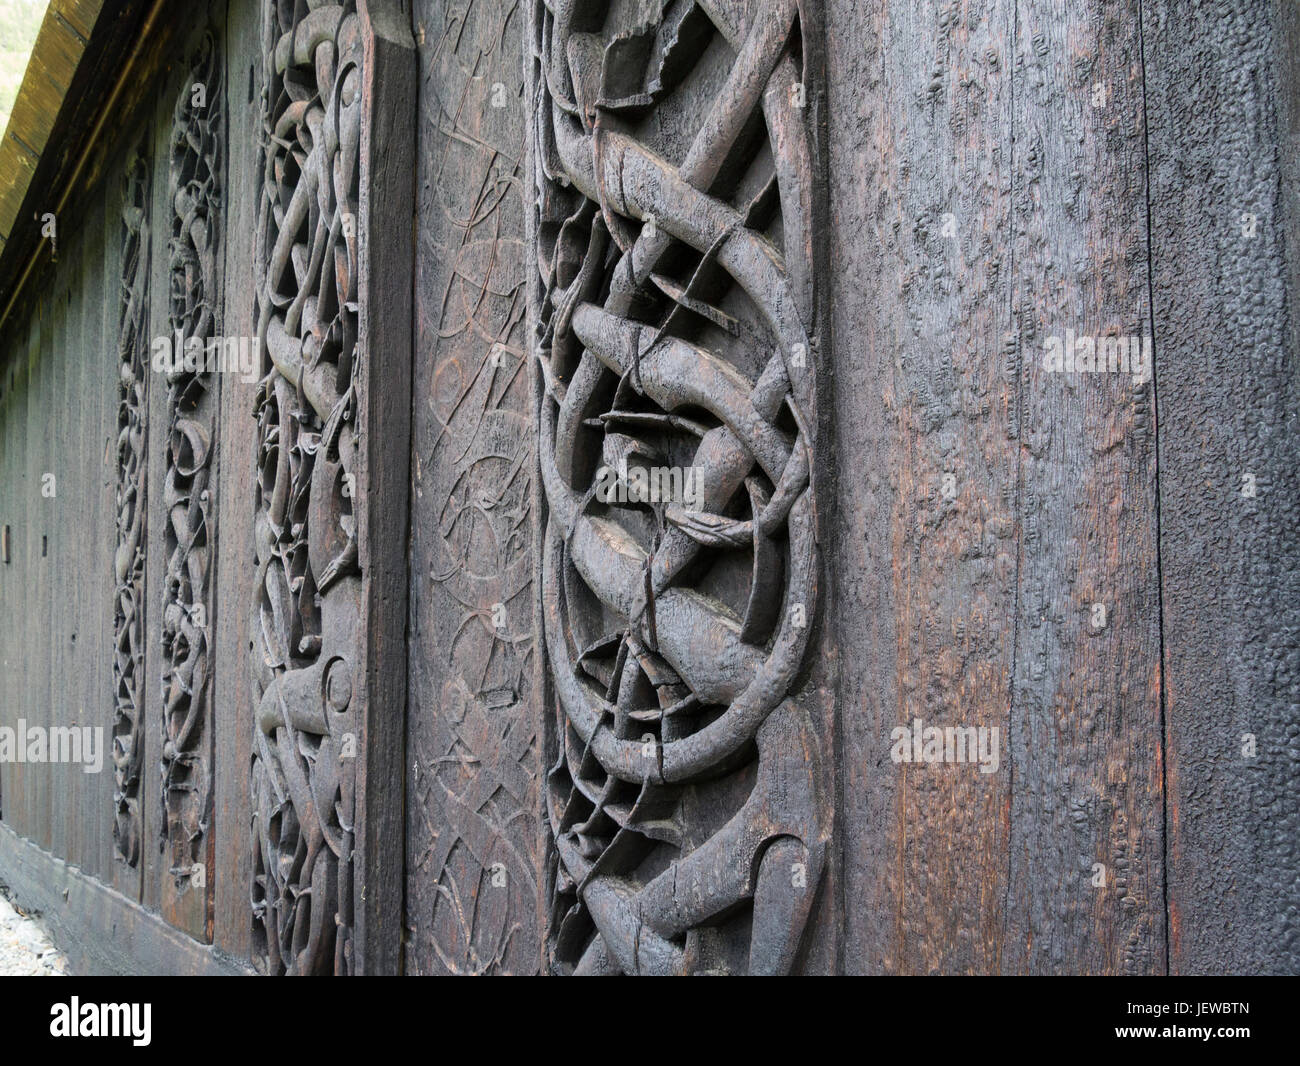 Iconography in old portal in Northern wall of Urnes old Stave church Ornes Luster Sogn og Fjordane county Norway - Stock Image